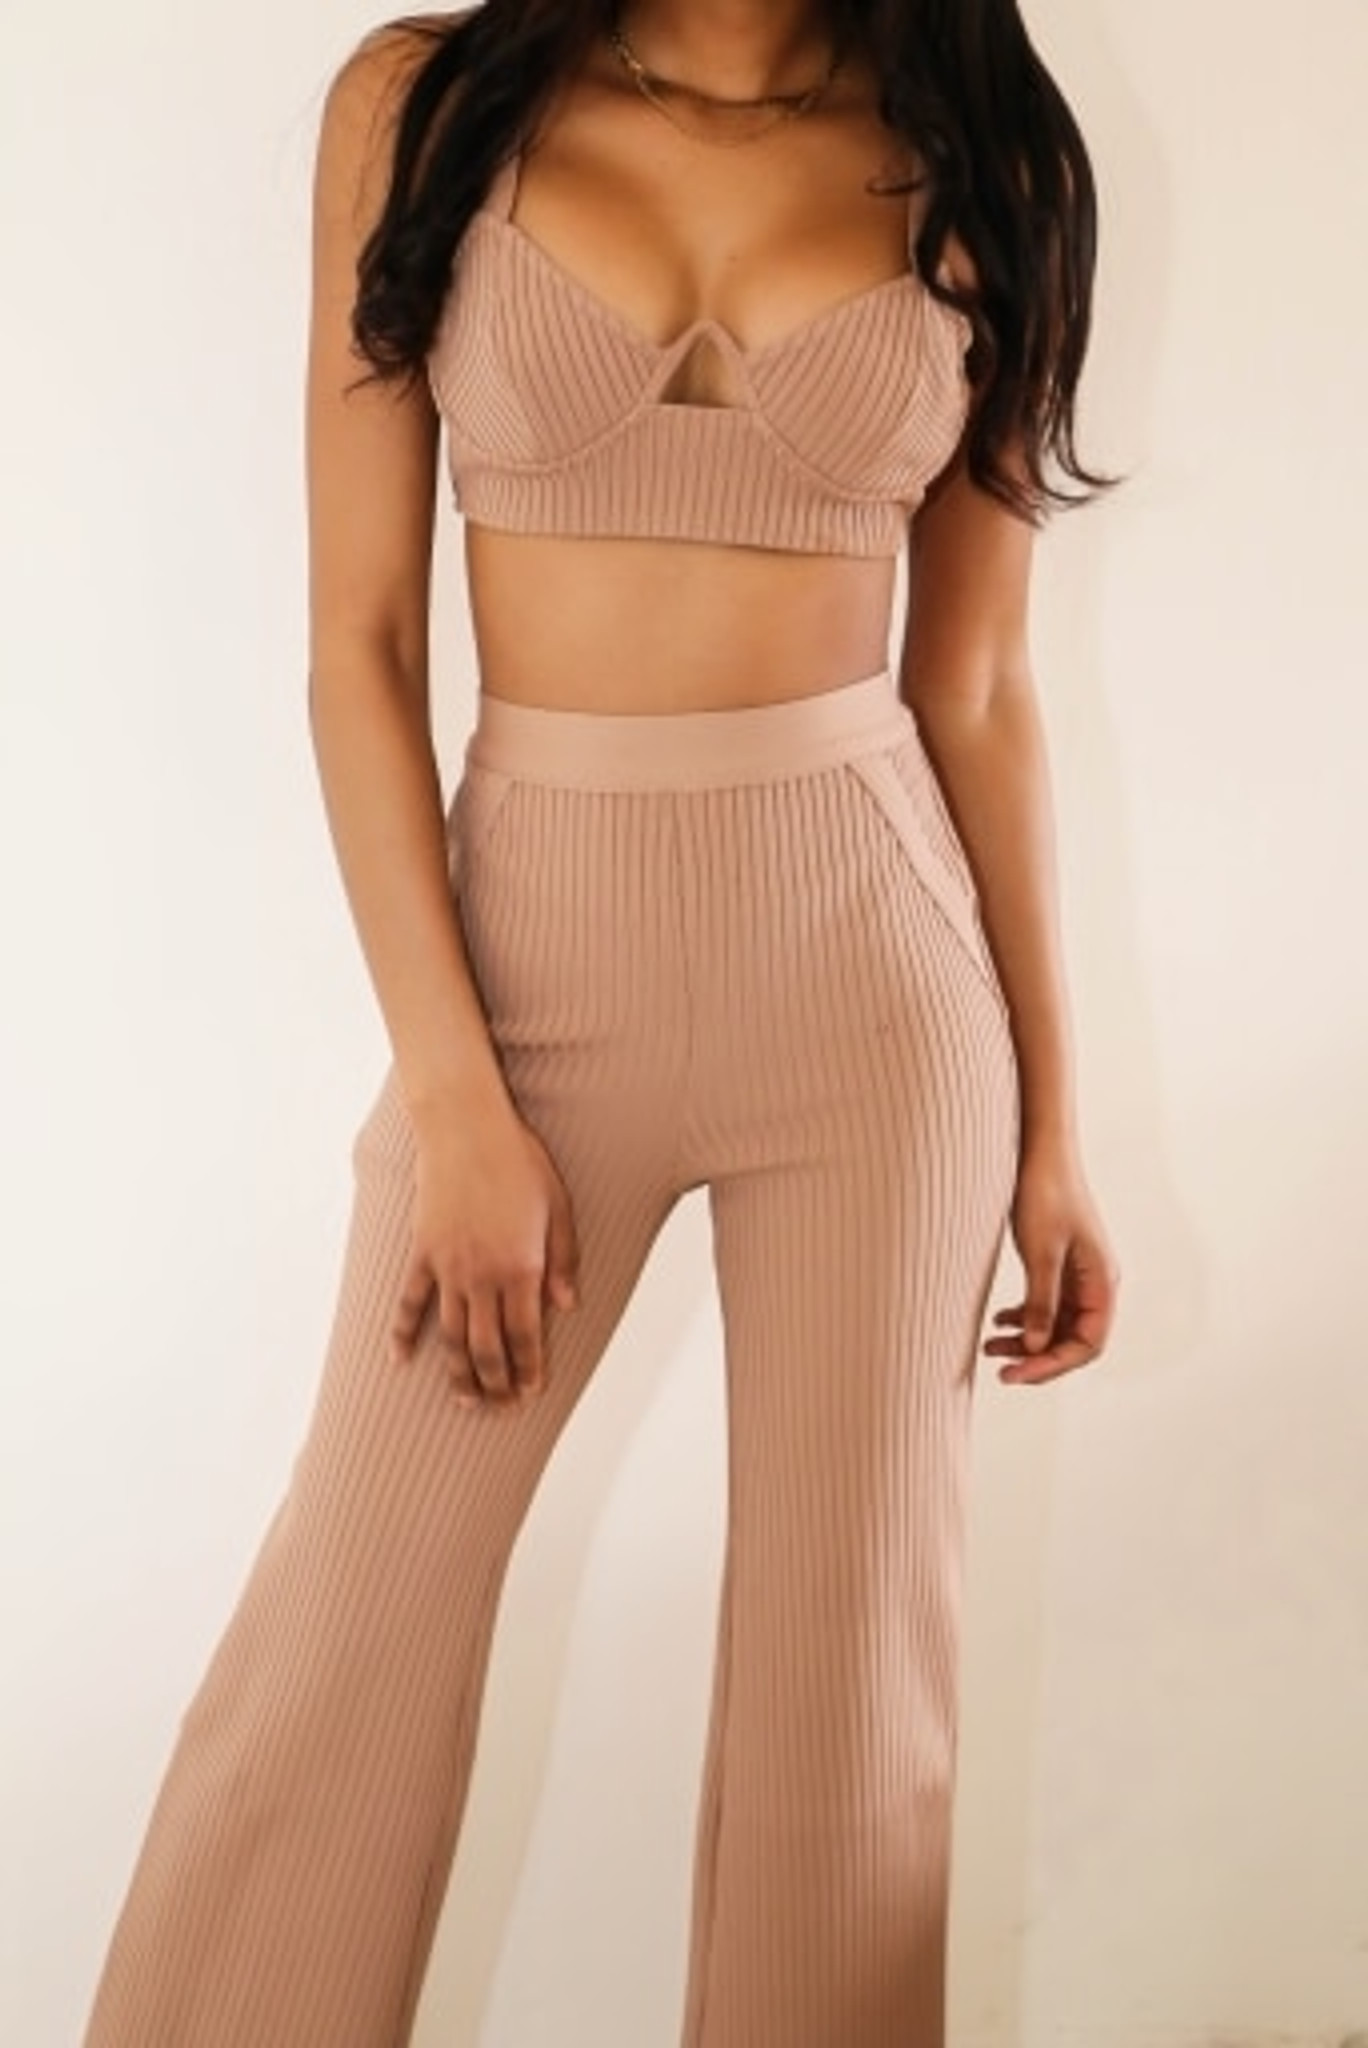 Ribbed Sexy 2 piece